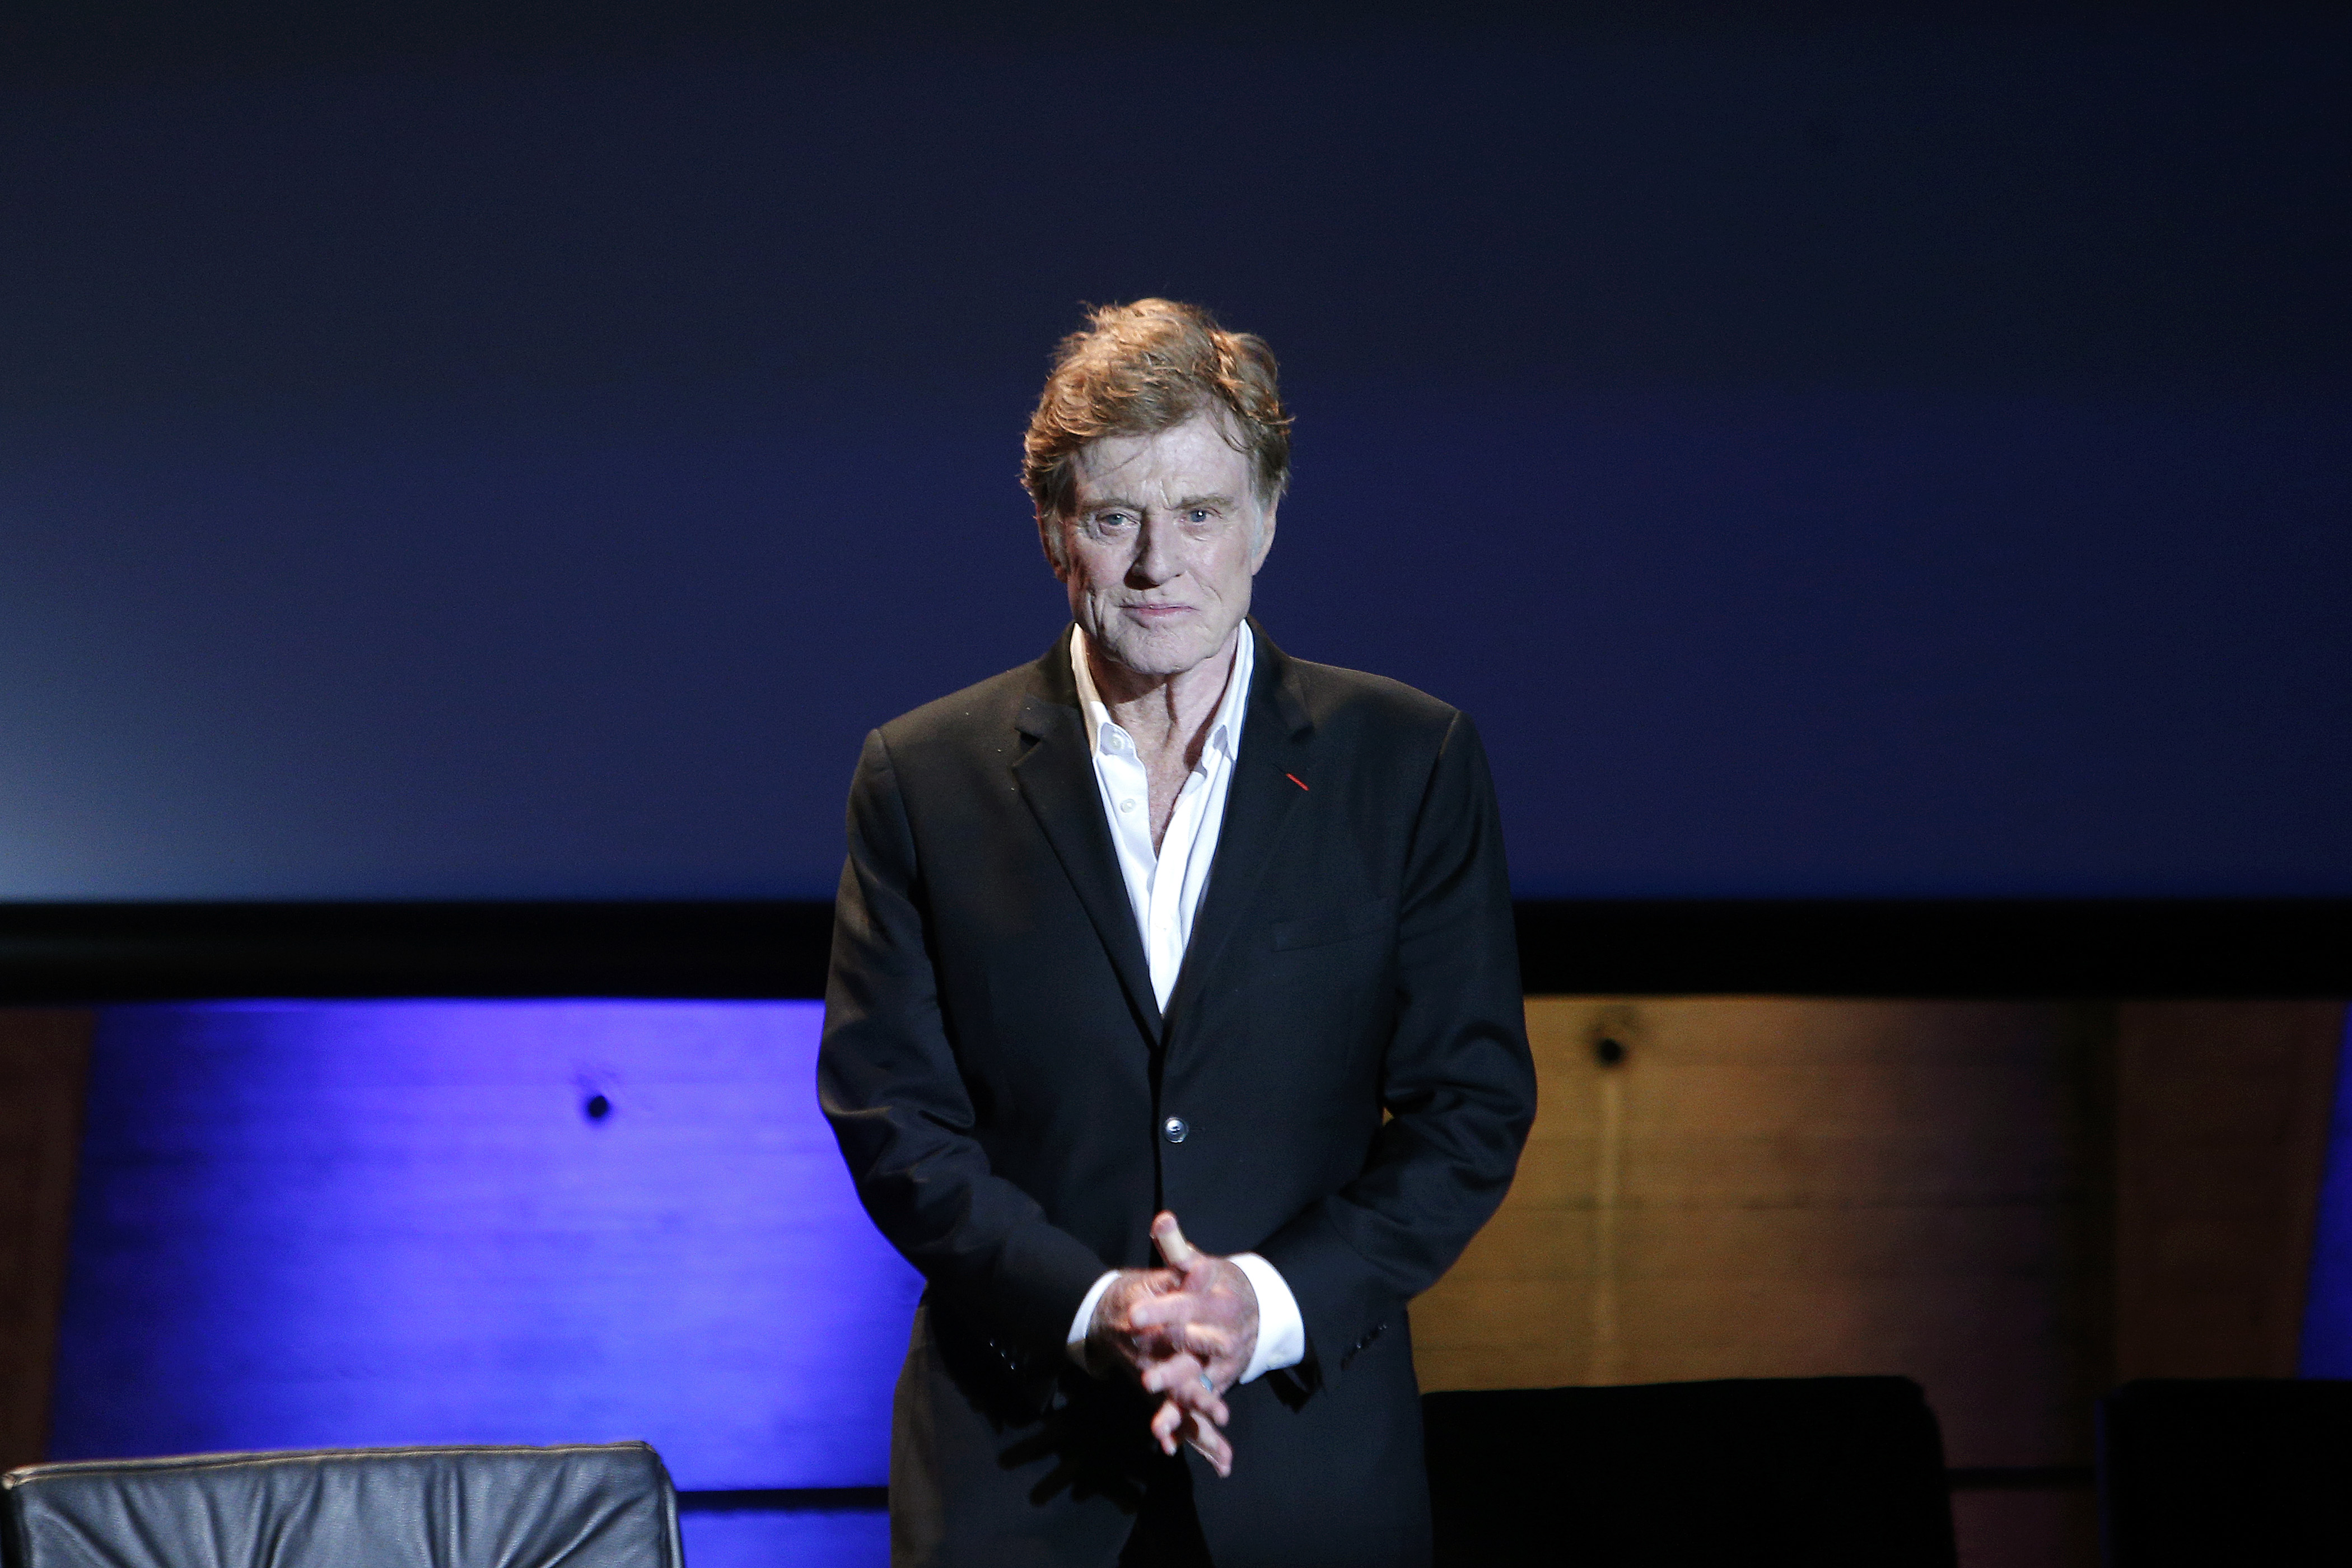 Robert Redford arrives on stage during a conference on climate at the UNESCO headquarters in Paris on Dec. 6, 2015.